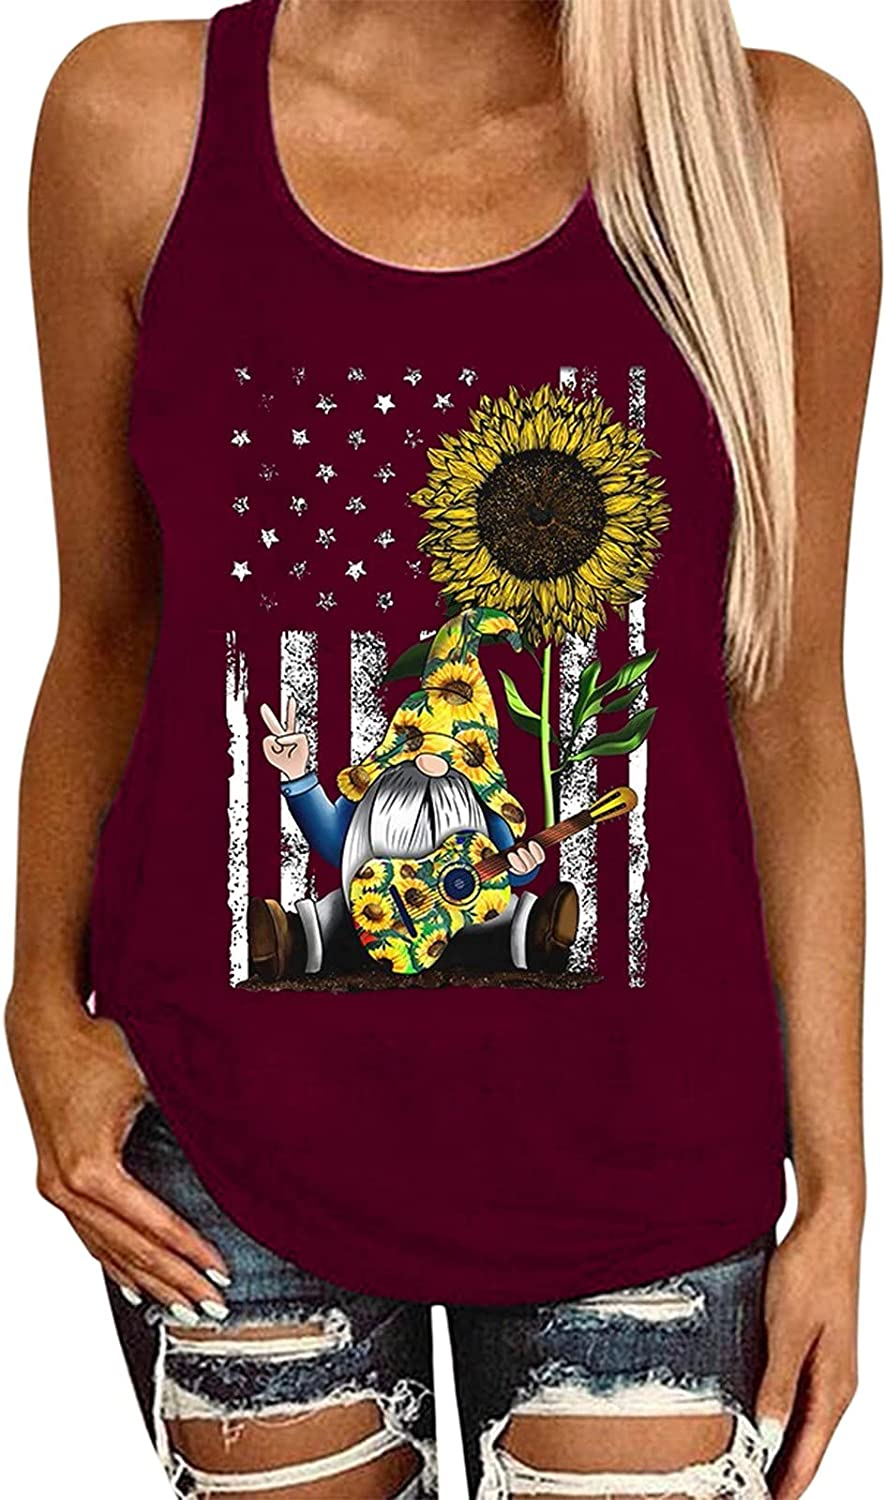 FABIURT Tank Tops for Women 4 of July Tanks Sleeveless Round Neck Tank Tops and Cami Sunflower Print Independence Day Tops